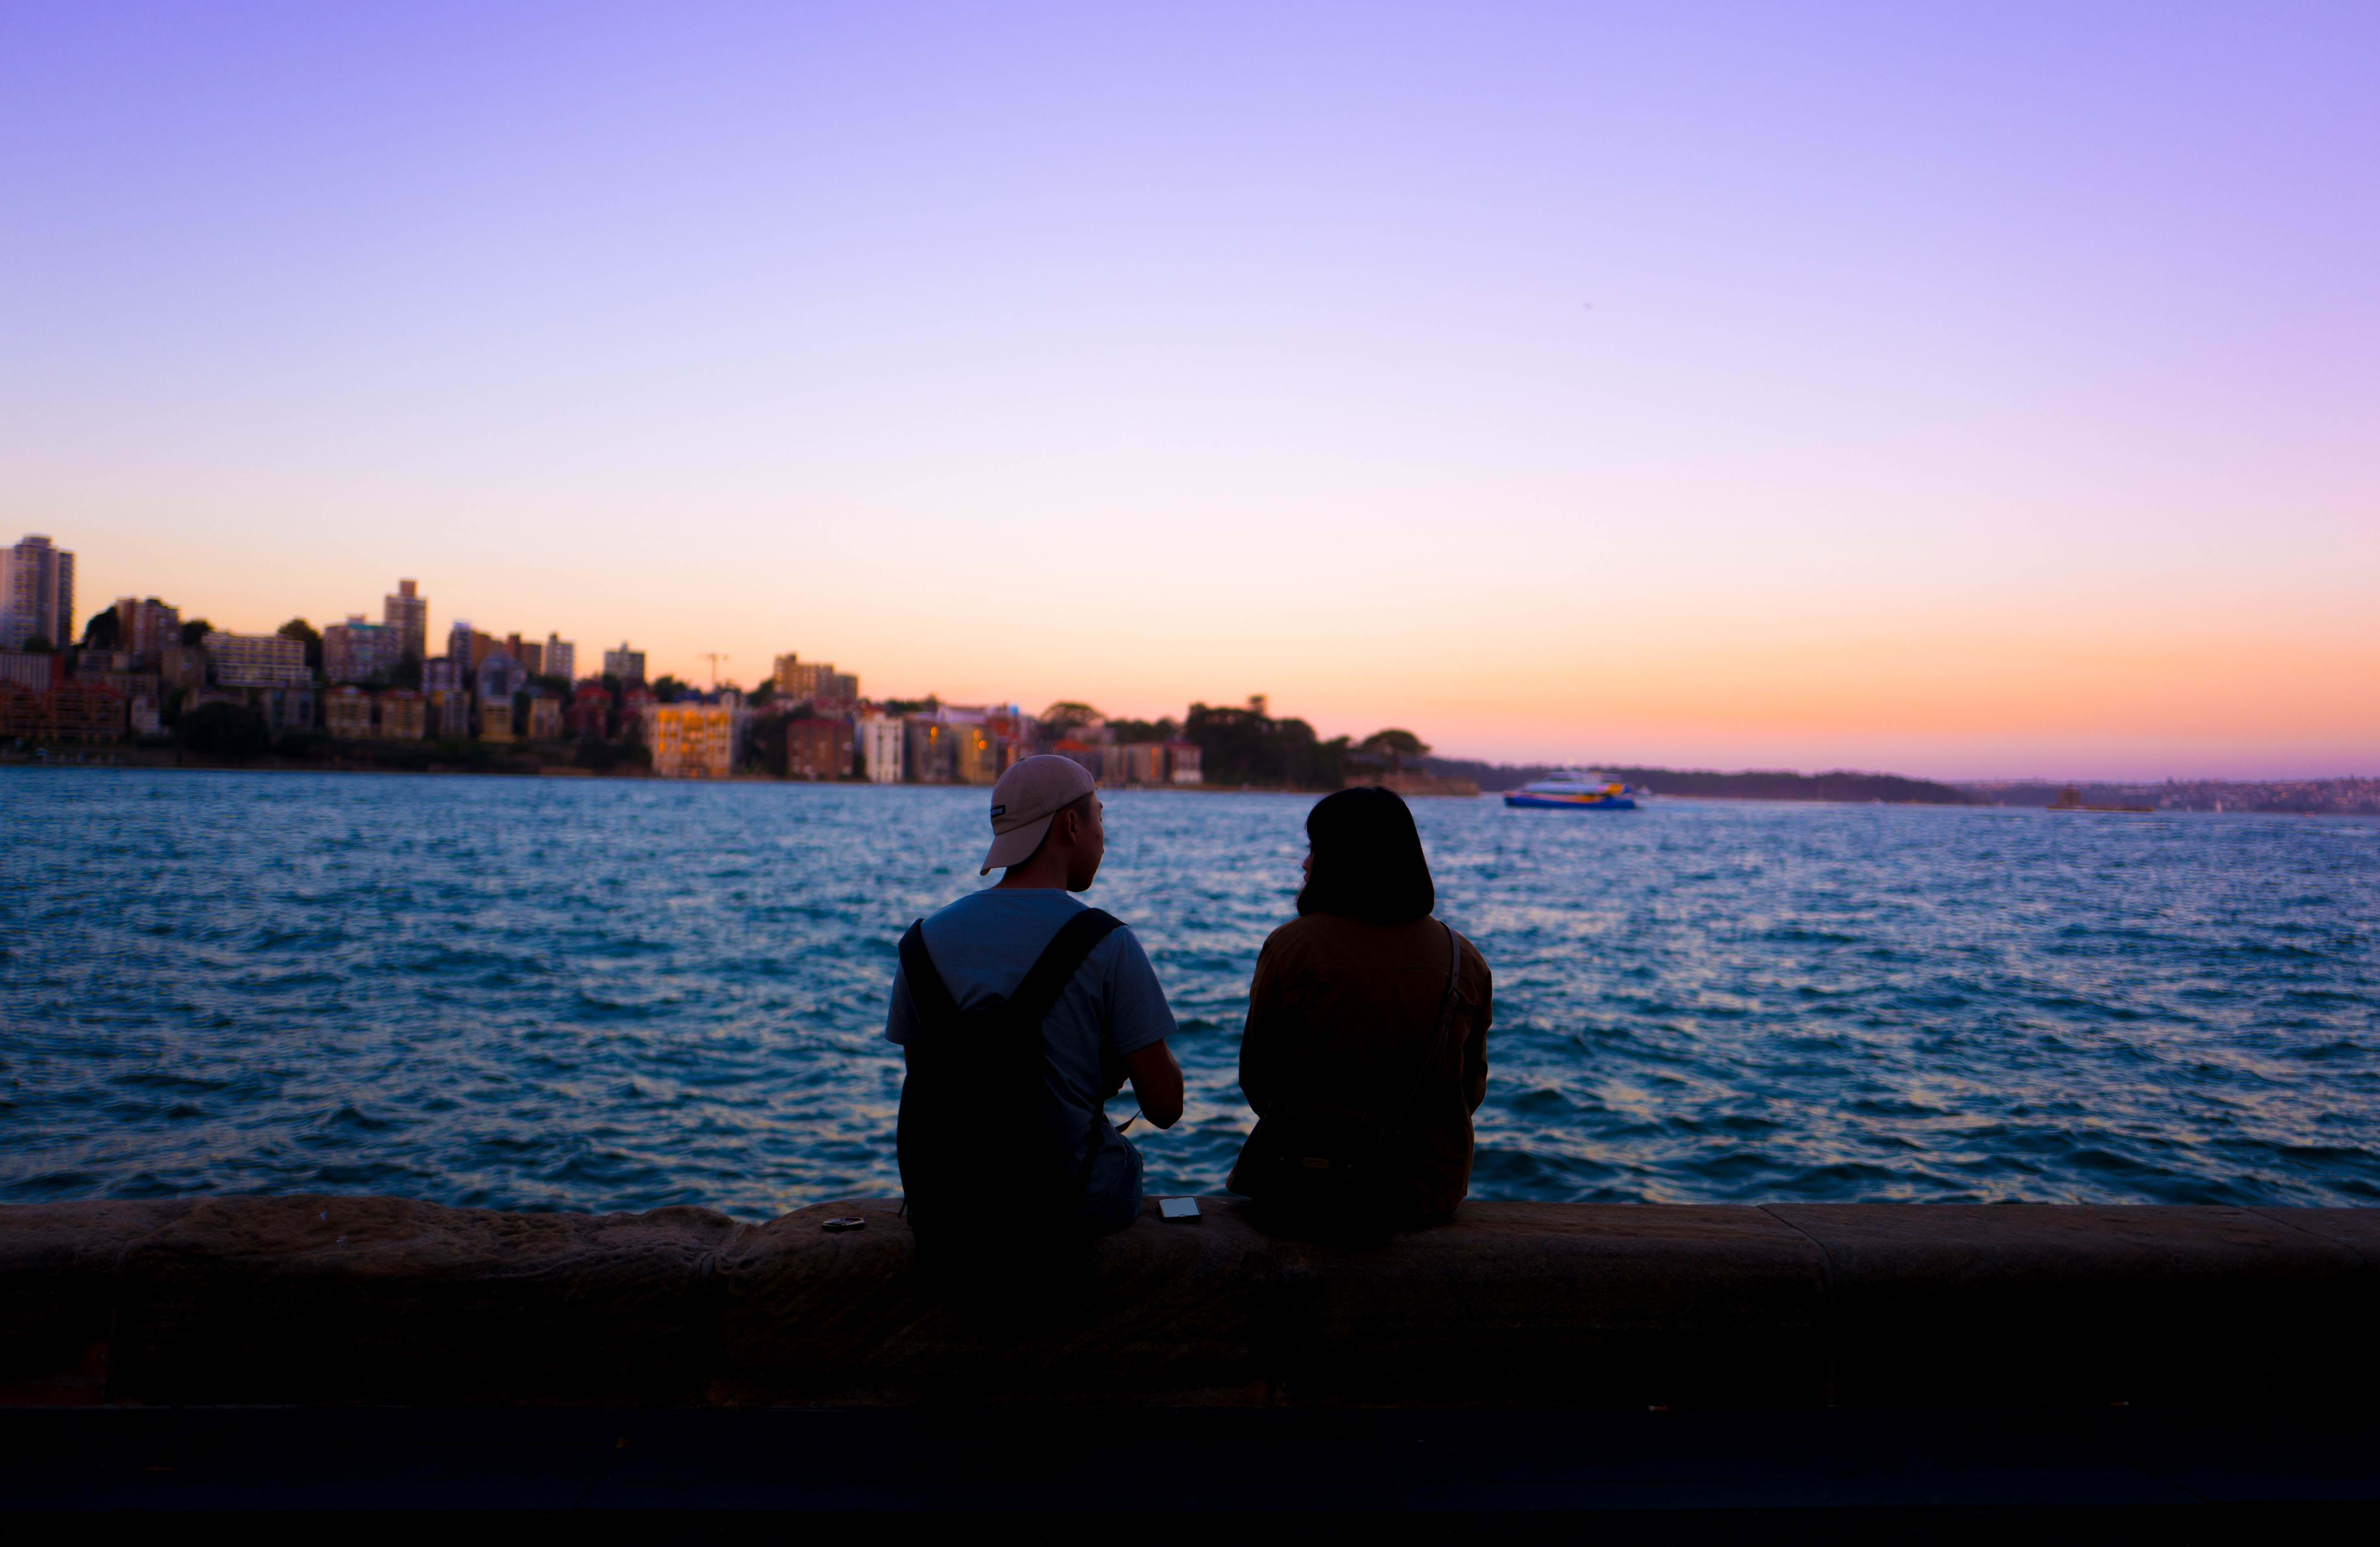 sydney-people-sunset-water-cover